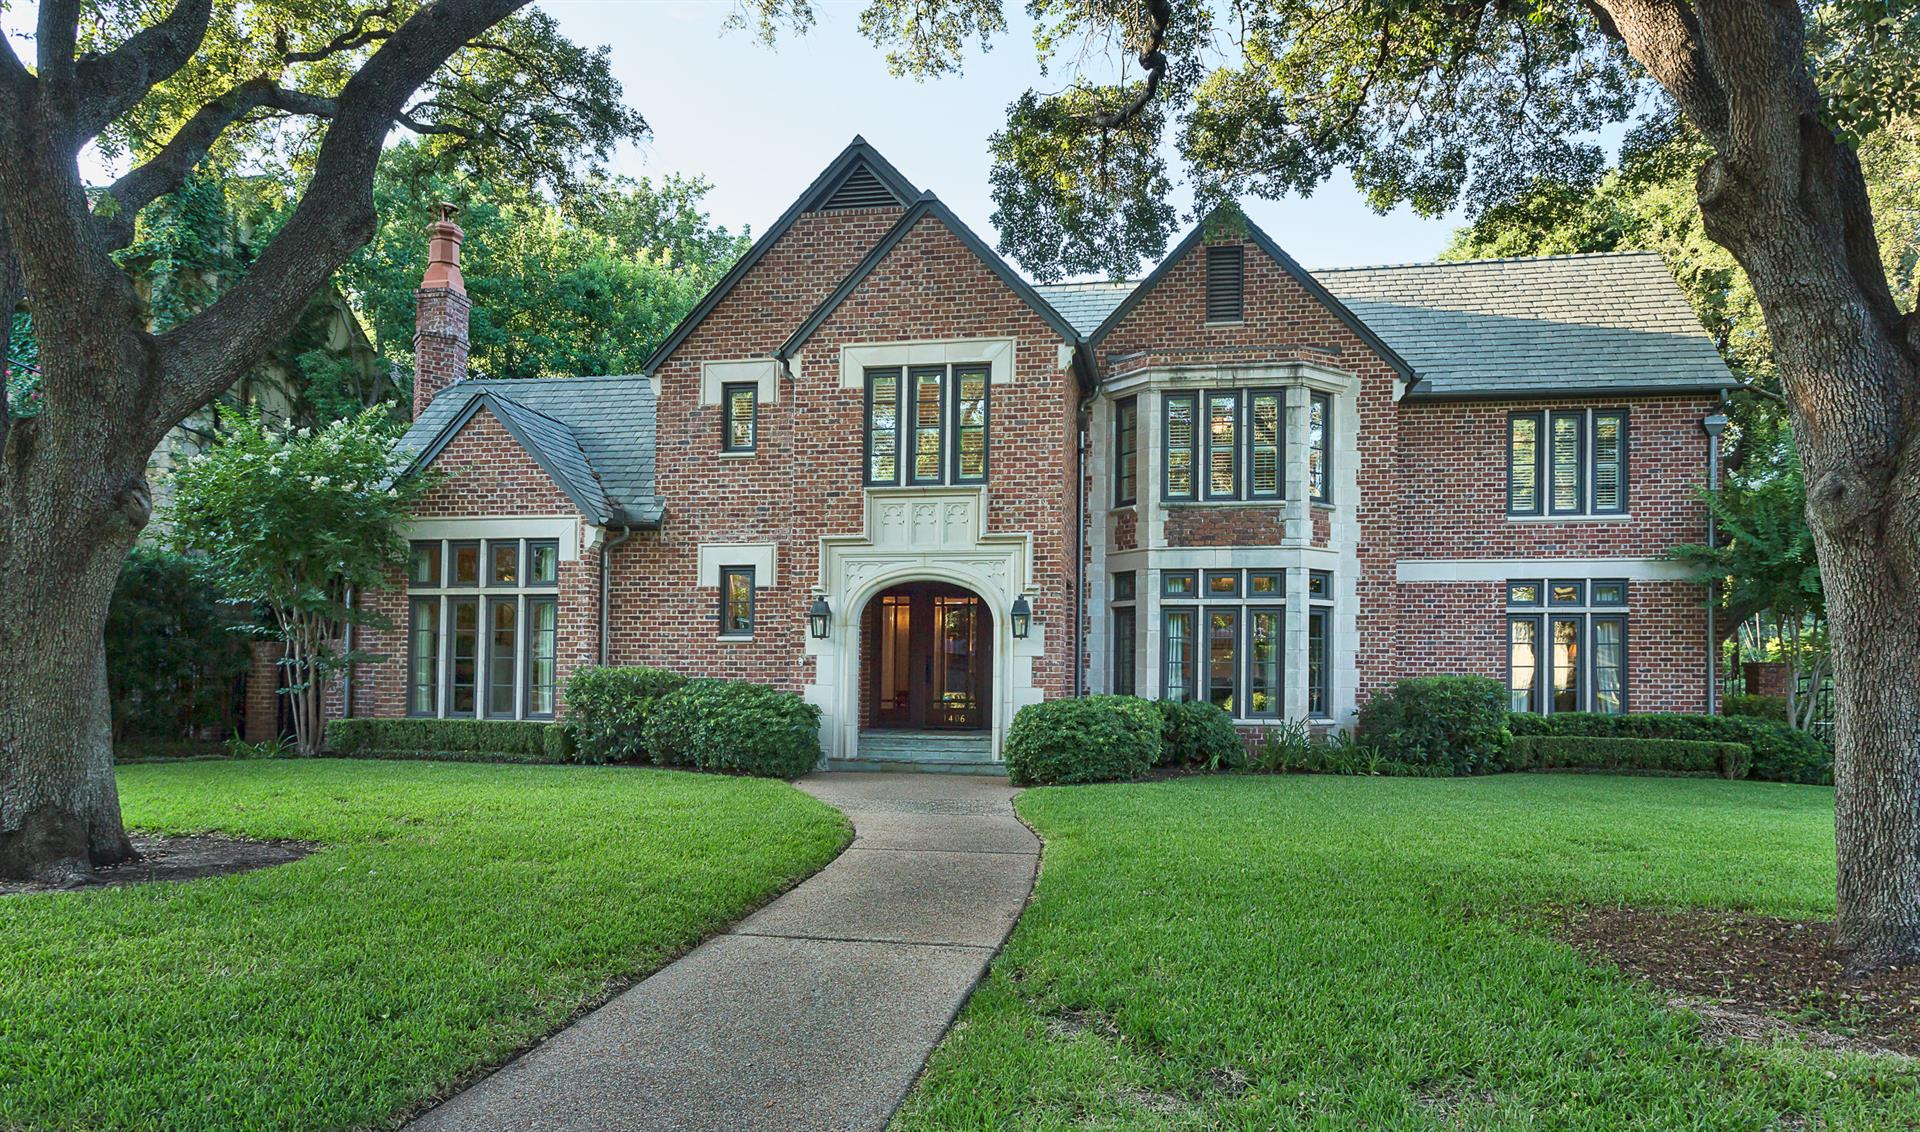 Residential for Sale at 1406 Wooldridge Dr 1406 Wooldridge Dr Austin, Texas 78703 United States